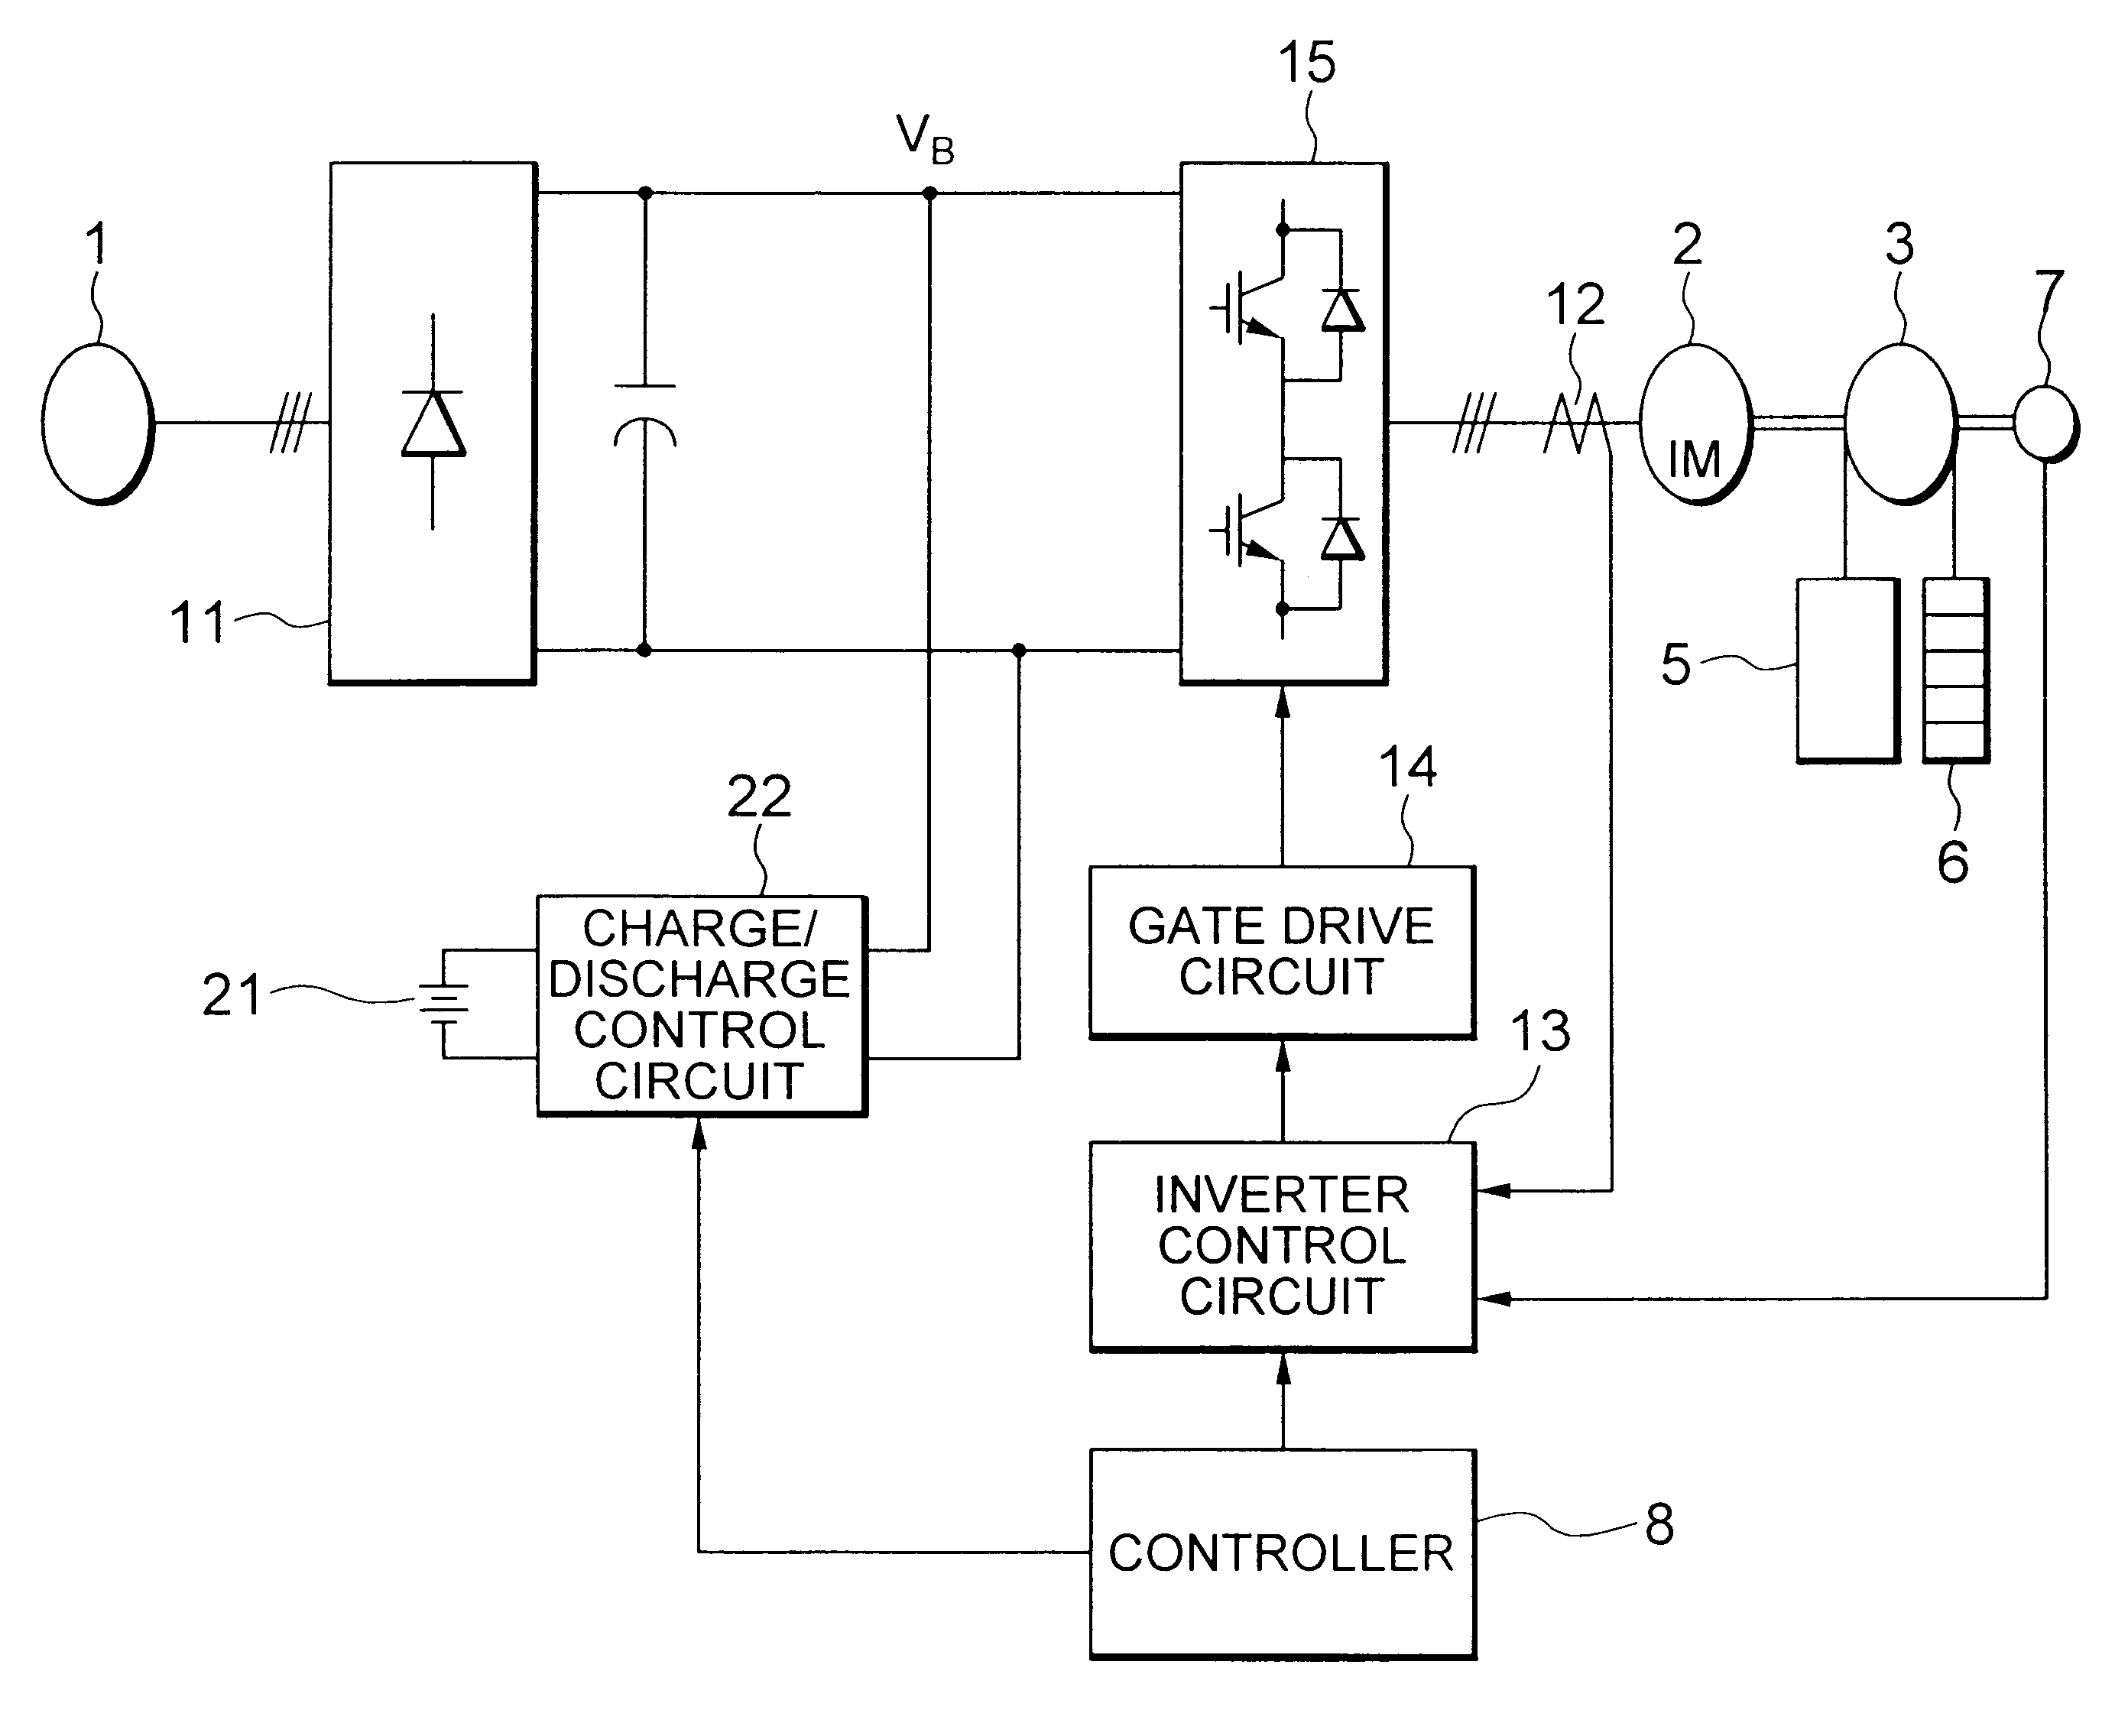 Patent Us6474447 Elevator Power Control For Adjusting Ratio Of Controller Circuit Drawing